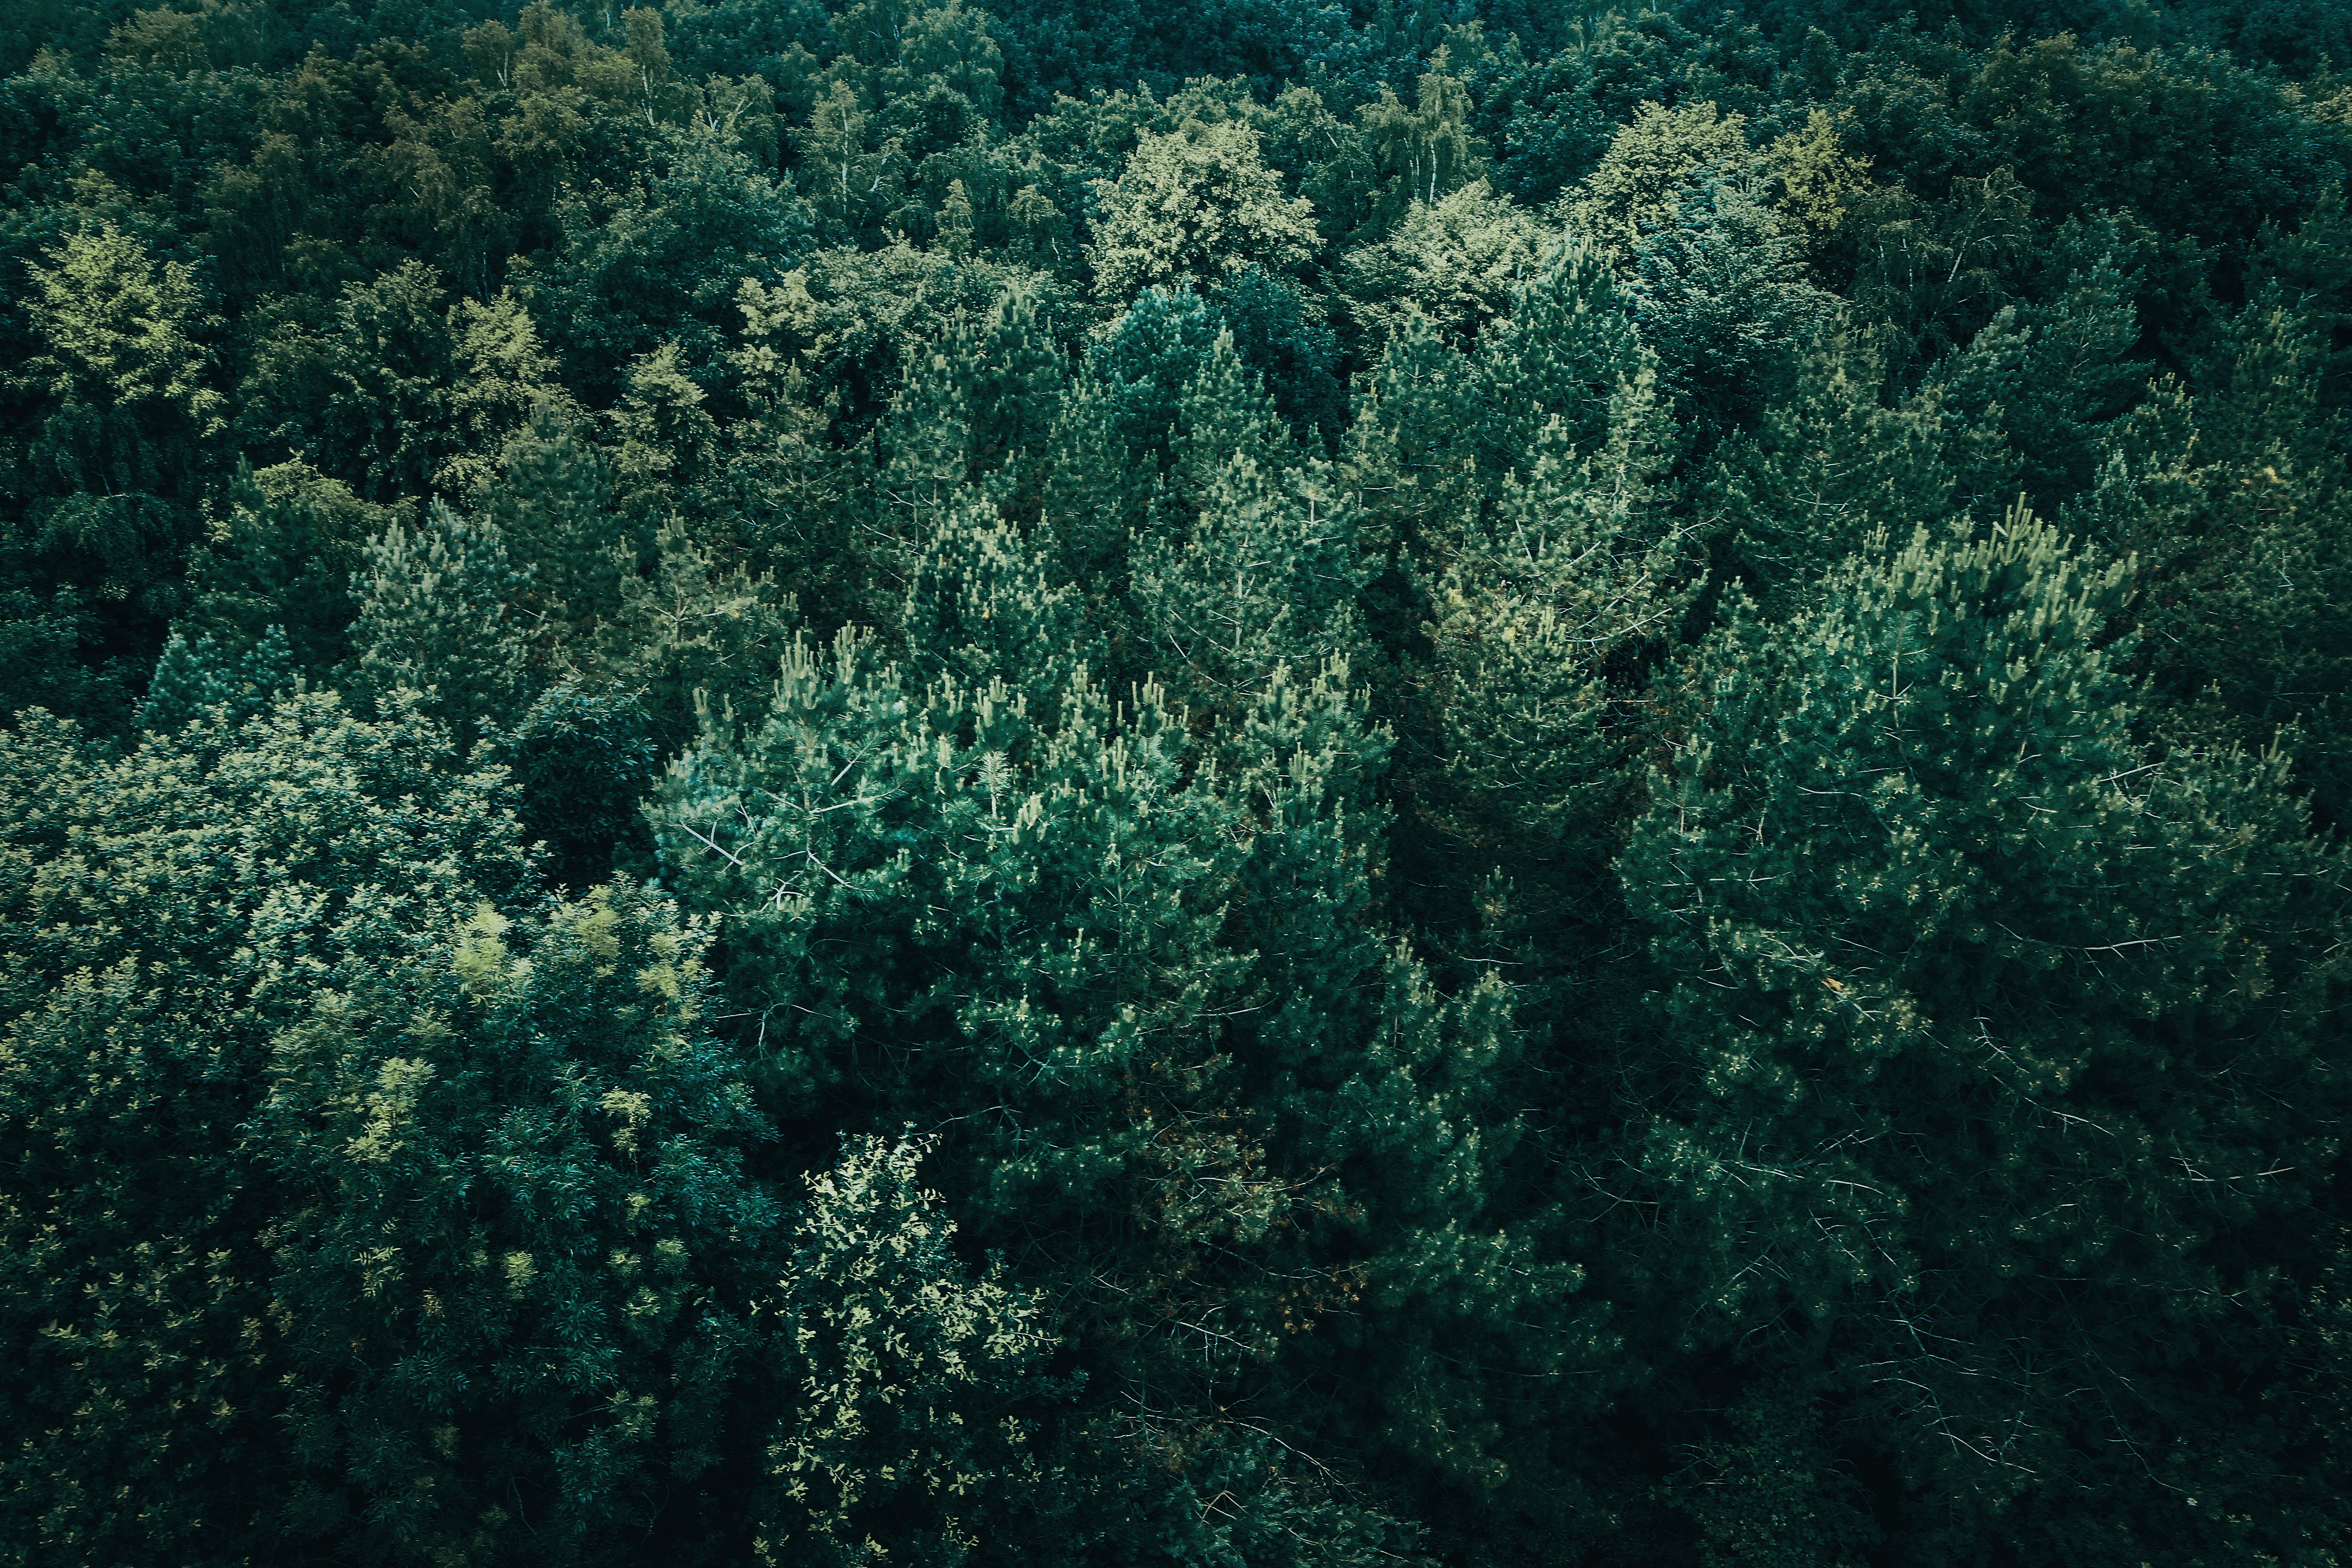 Free stock photo of landscape, forest, trees, green